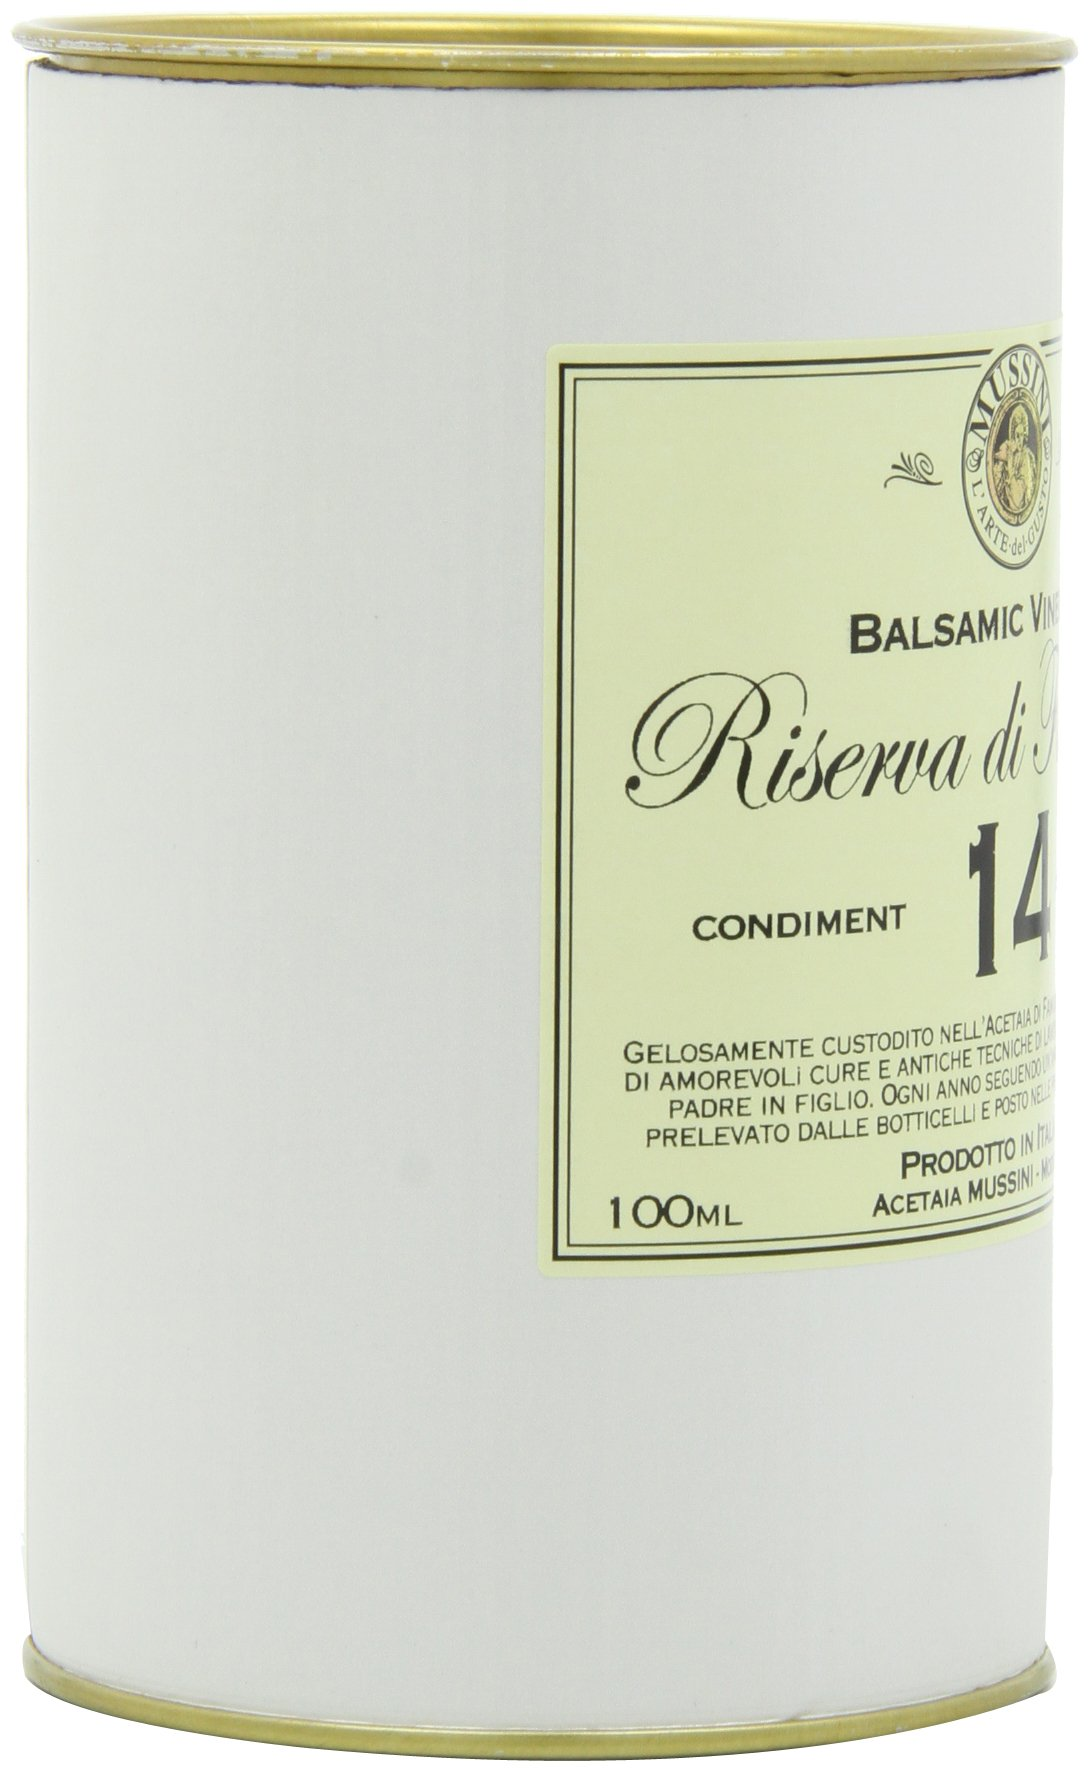 """Italian 14 year""""riserva di famiglia"""" balsamic vinegar, 3. 4 ounces 7 save money with pack sizes made in small batches produced by mussini in italy"""